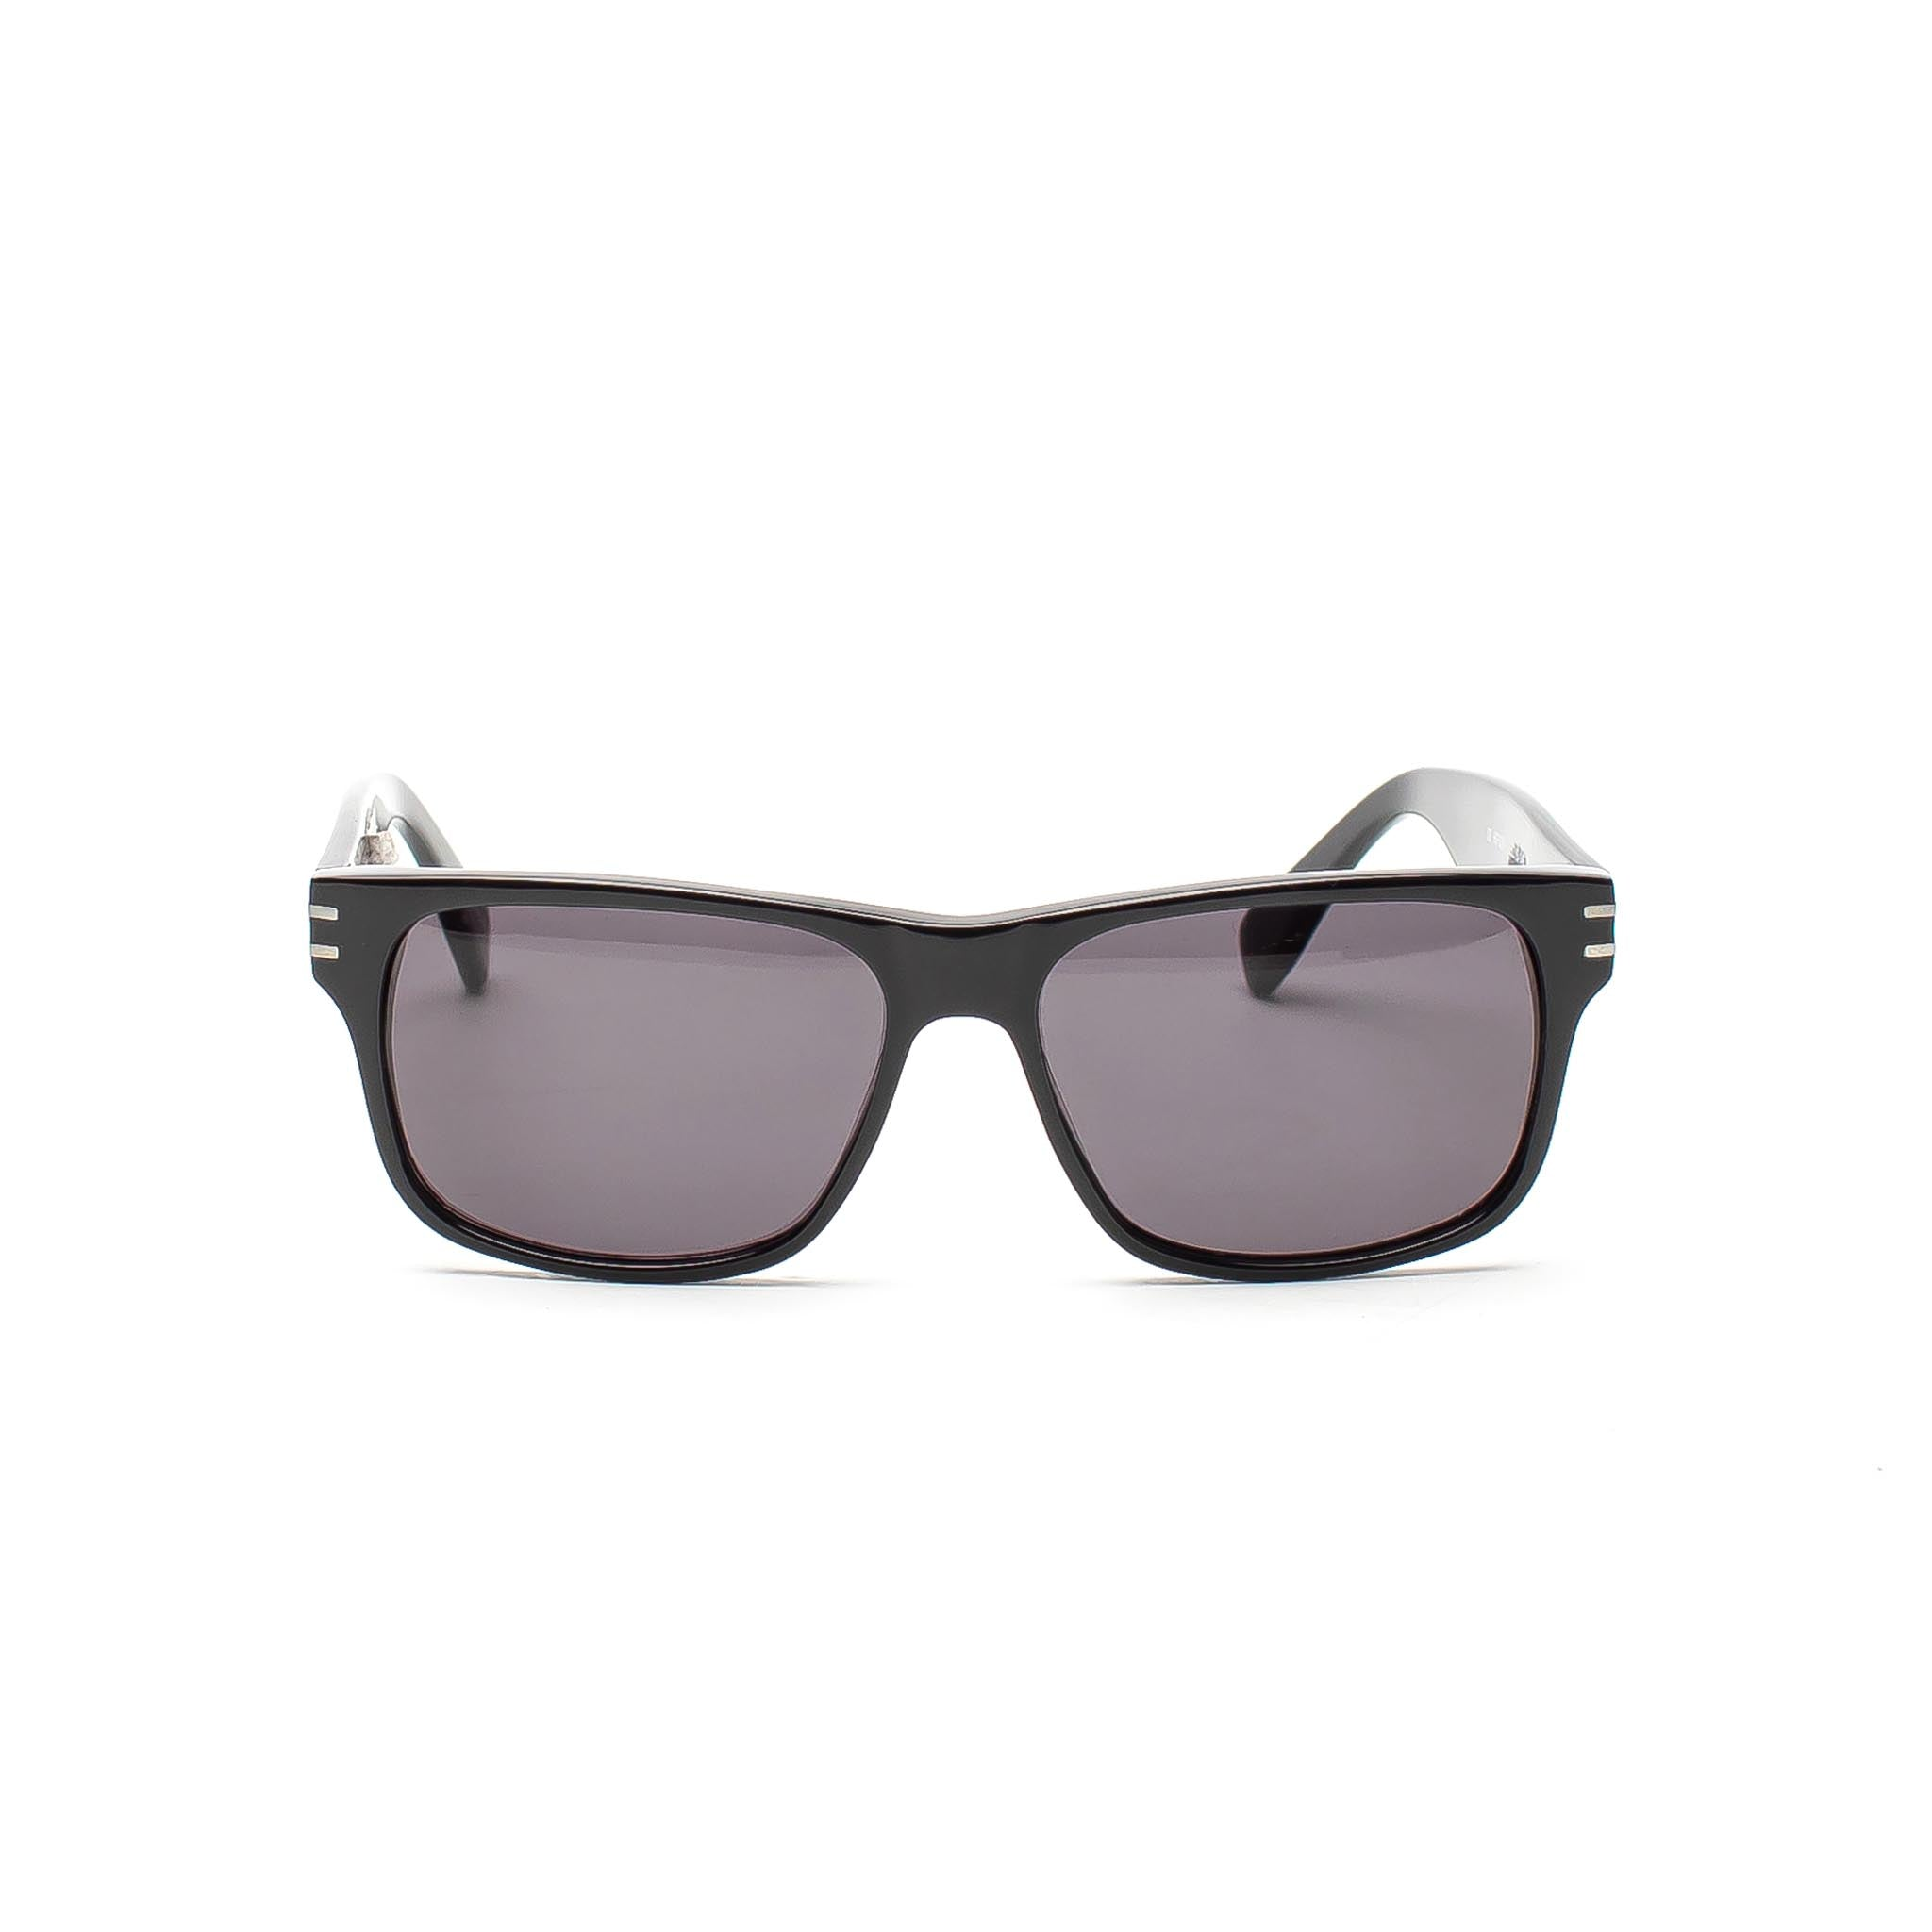 HOMME+ HP006 Sunglasses Black